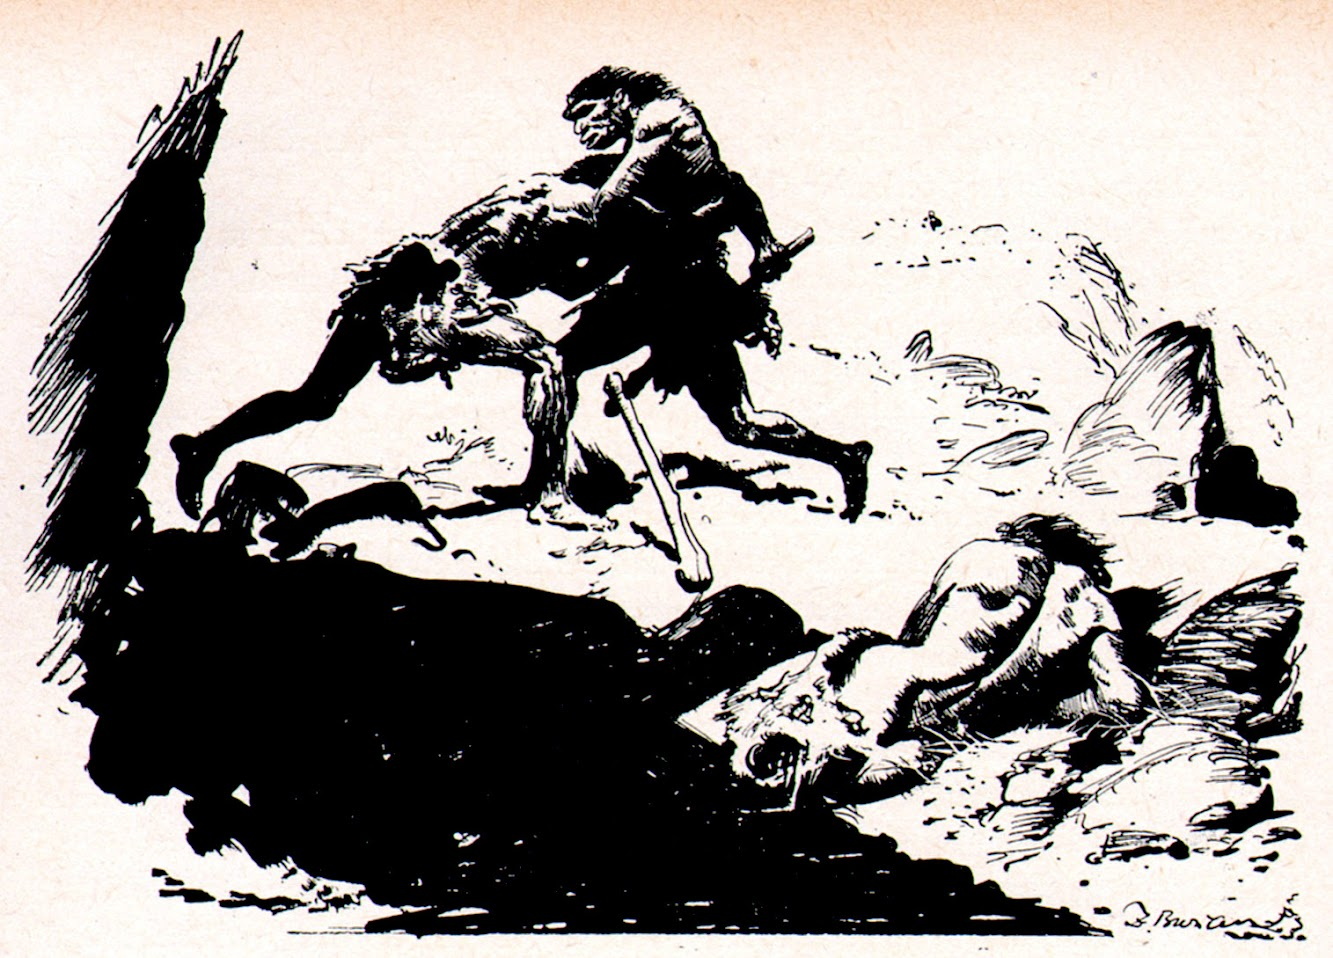 Did Zdenek Burian Influence Frank Frazetta?